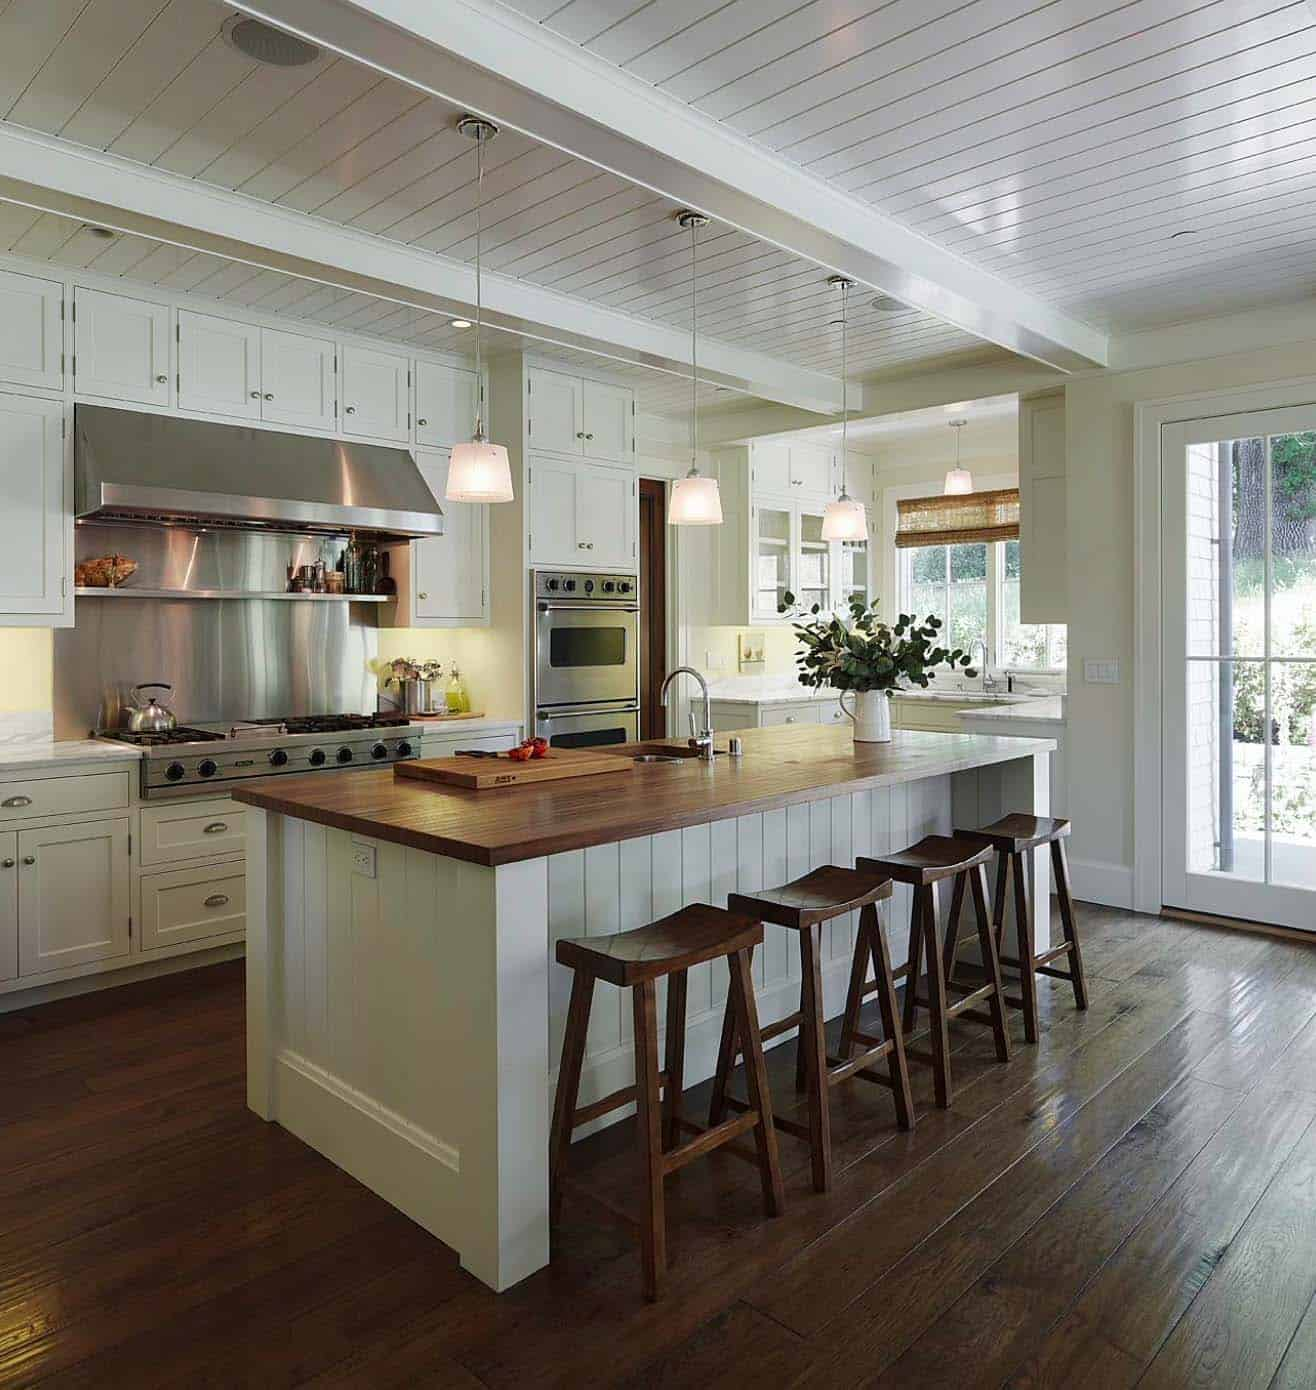 4 Brilliant Kitchen Remodel Ideas: 30+ Brilliant Kitchen Island Ideas That Make A Statement